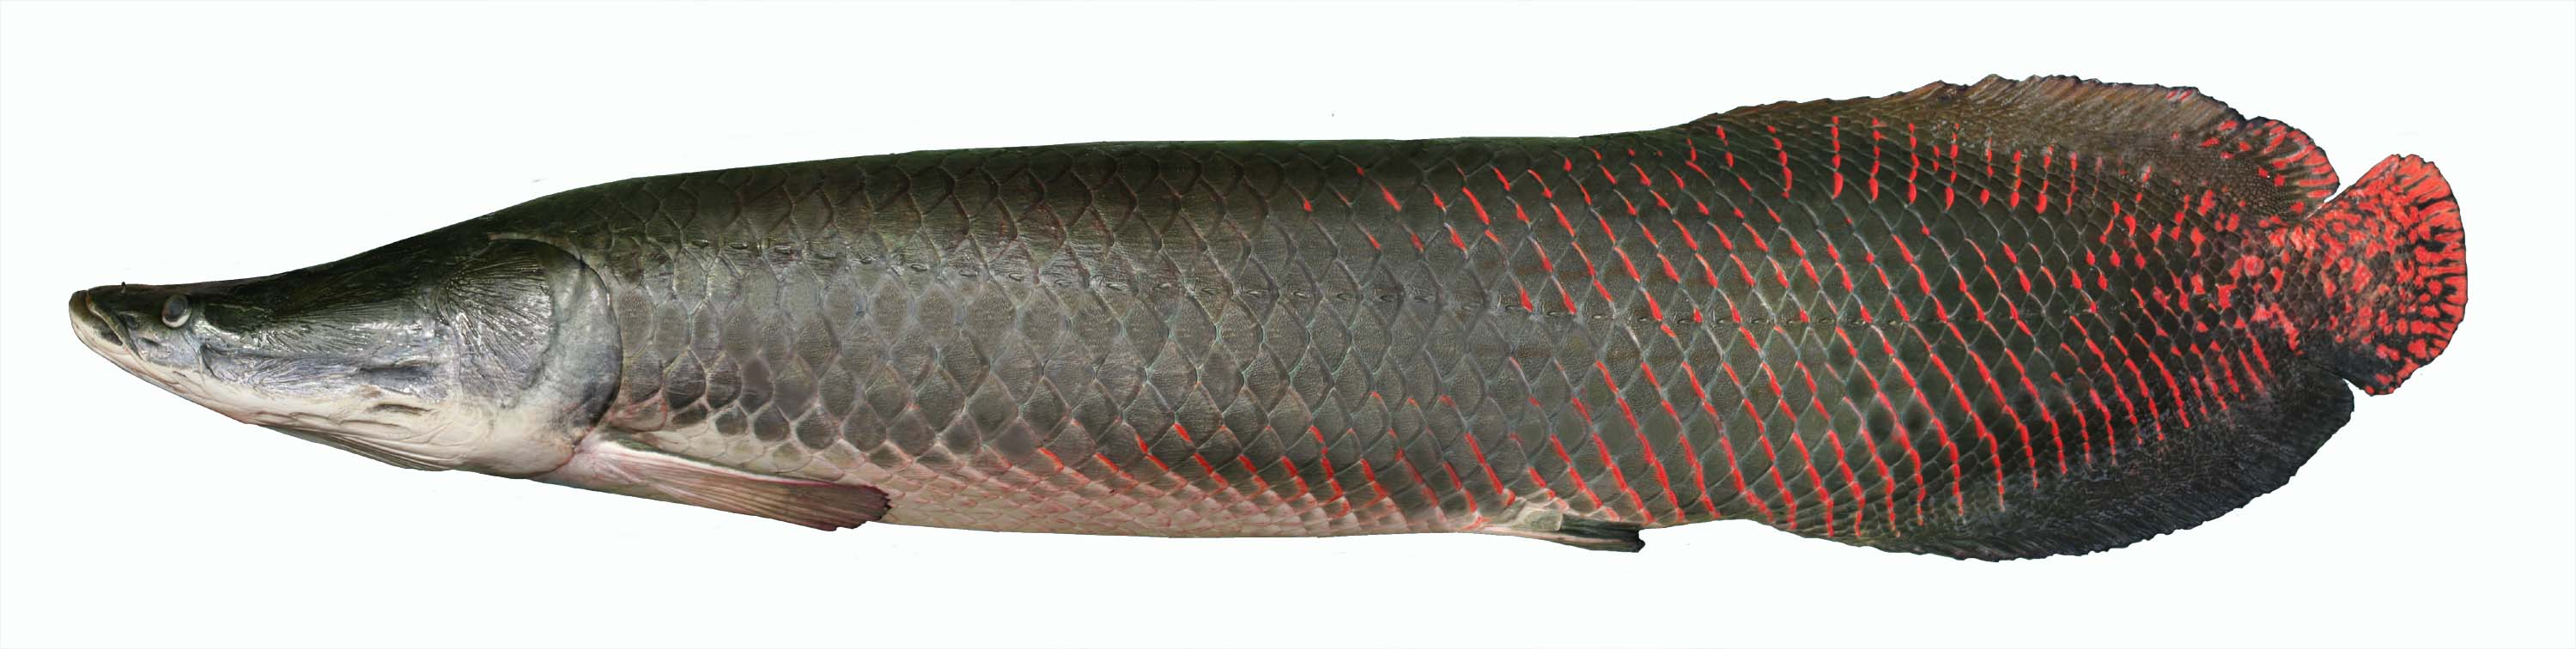 Arapaima another reason to be concerned about the for Freshwater wolf fish